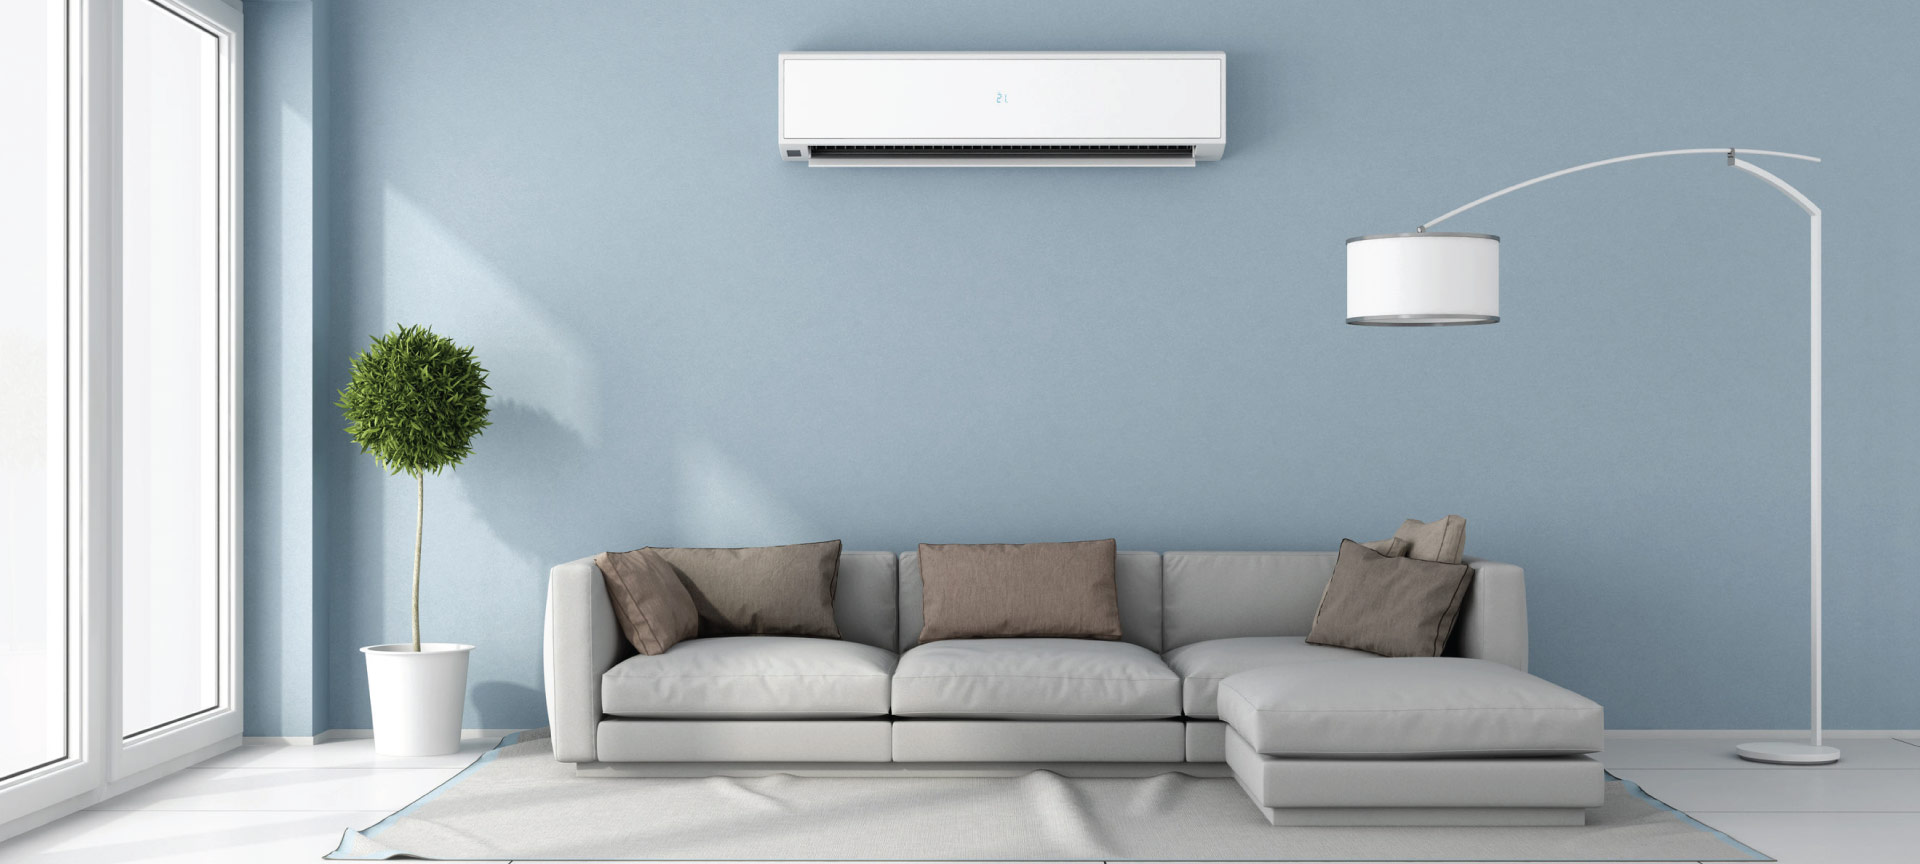 Airvent Airconditioning & Ventilation: air conditioning maintenance cape town